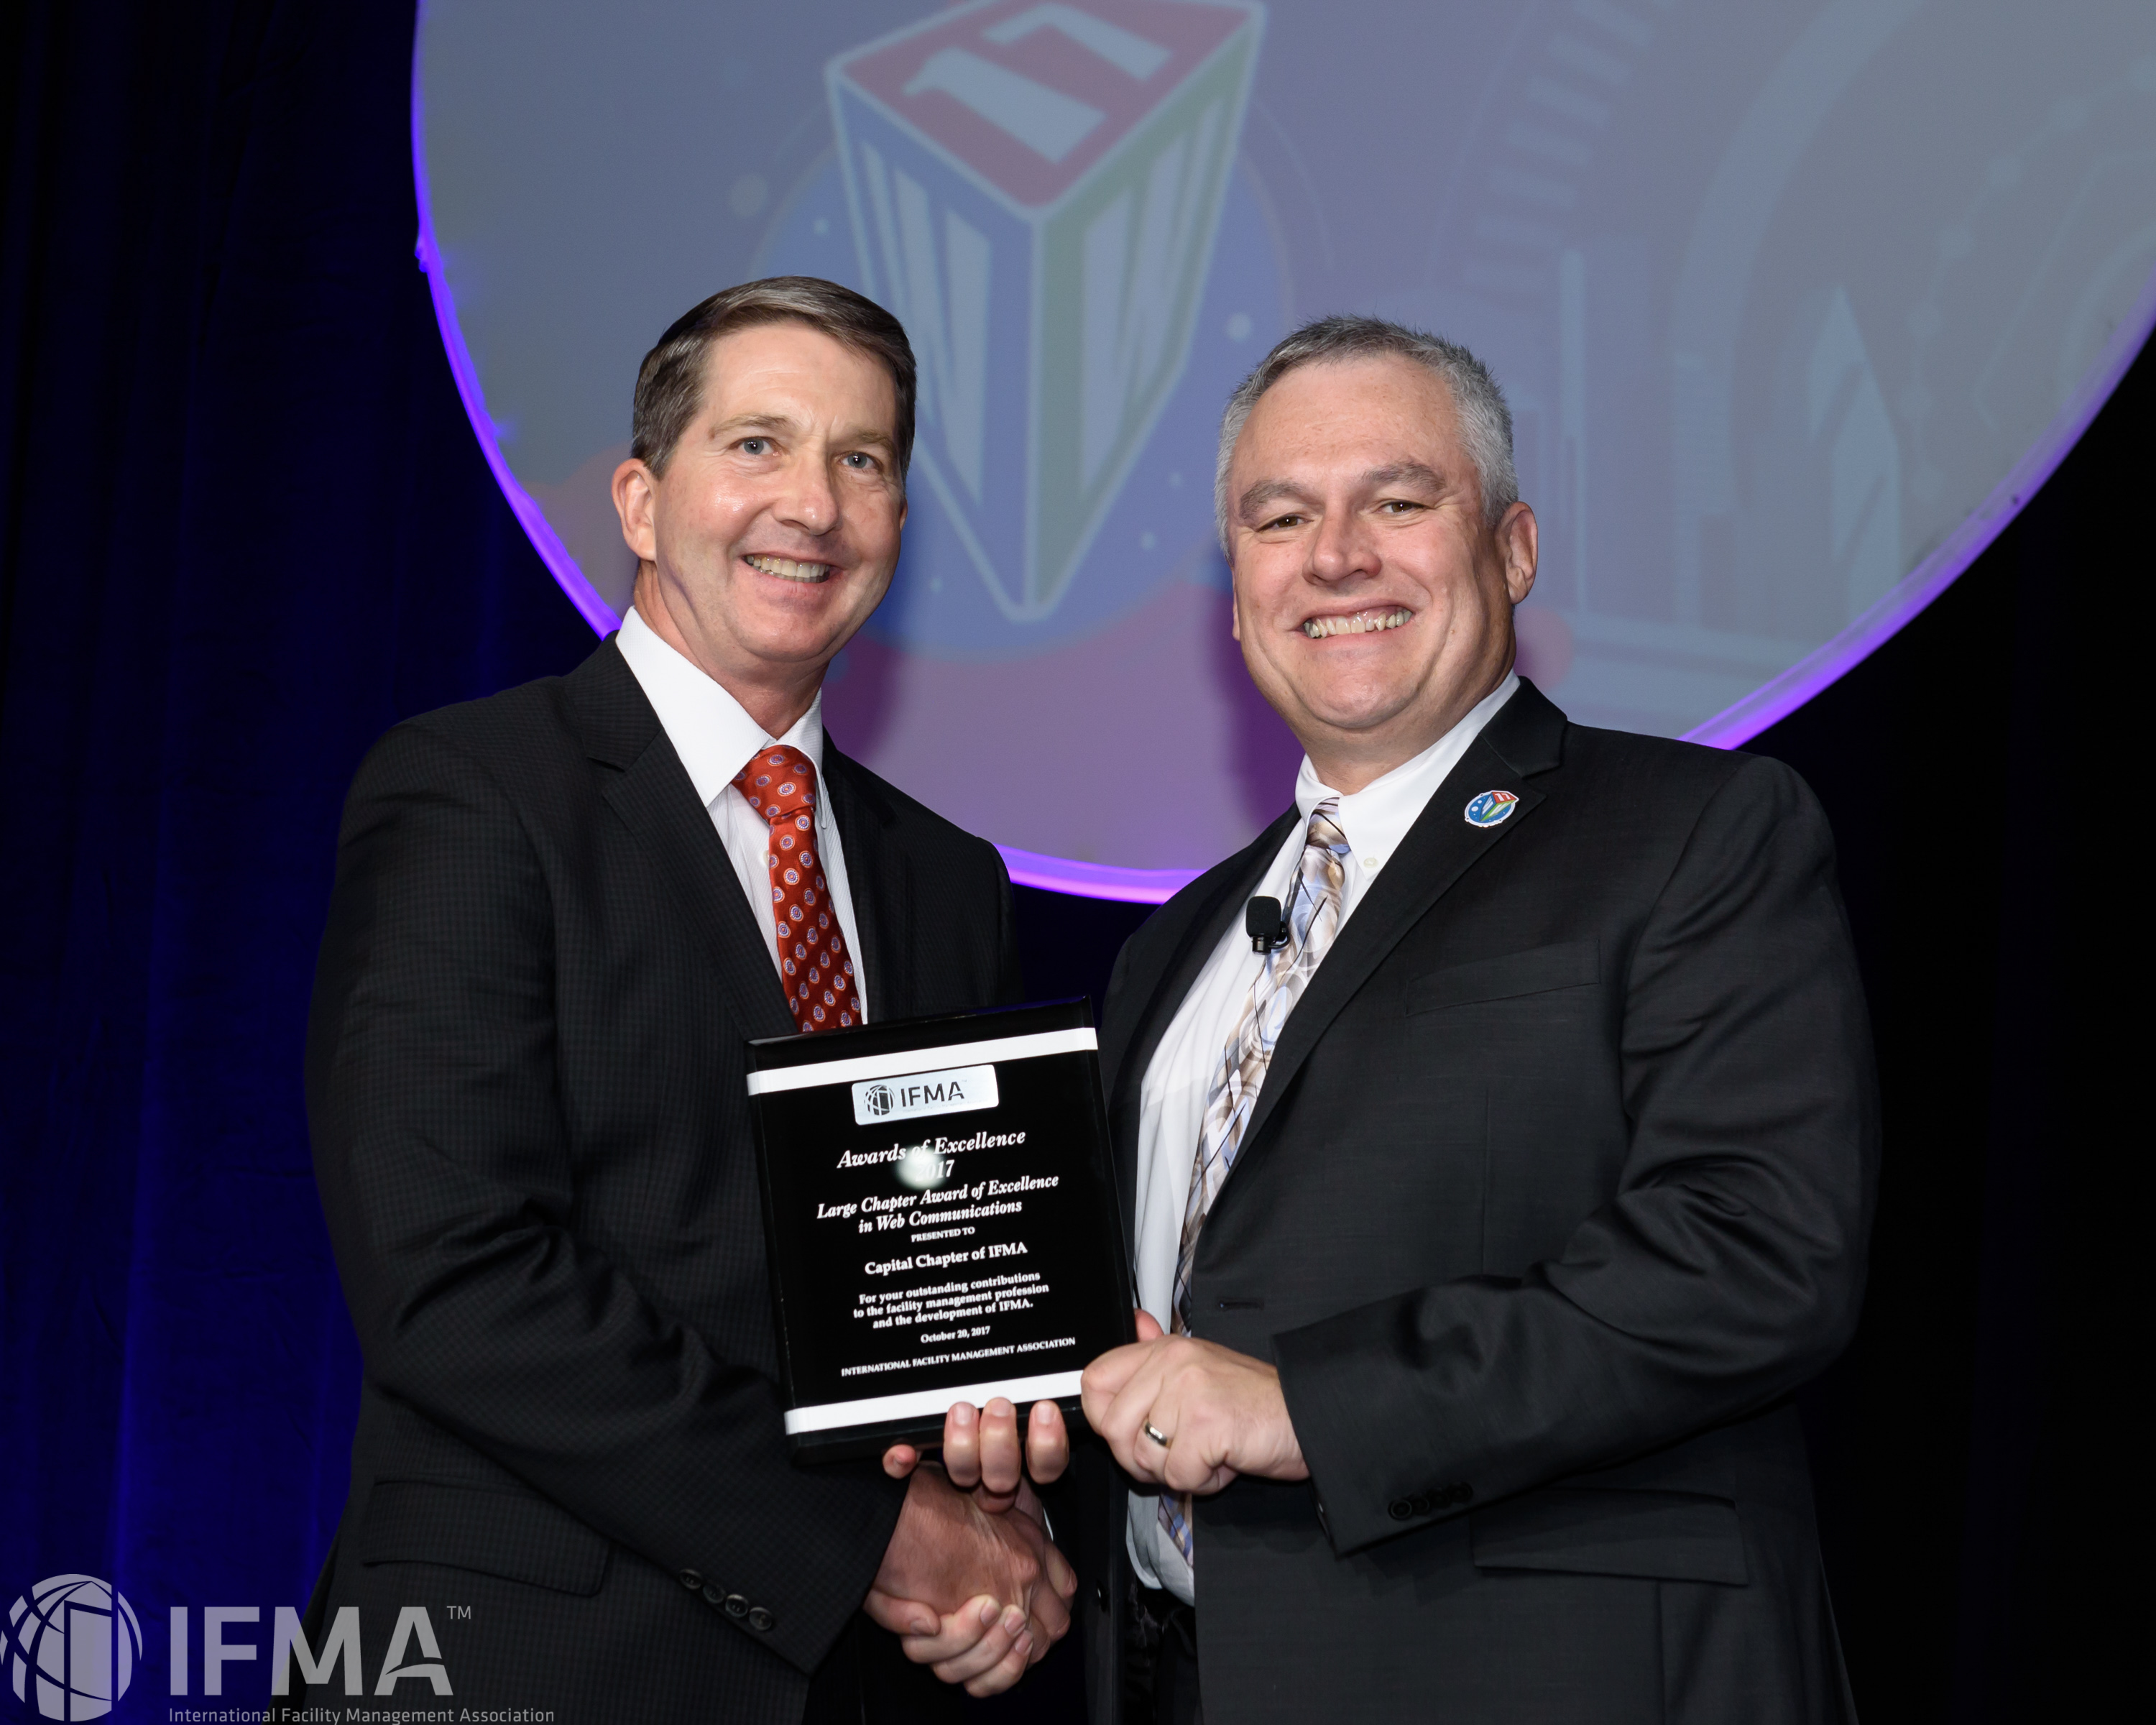 Capital Chapter of IFMA receives Large Chapter Award of Excellence in Web Communications